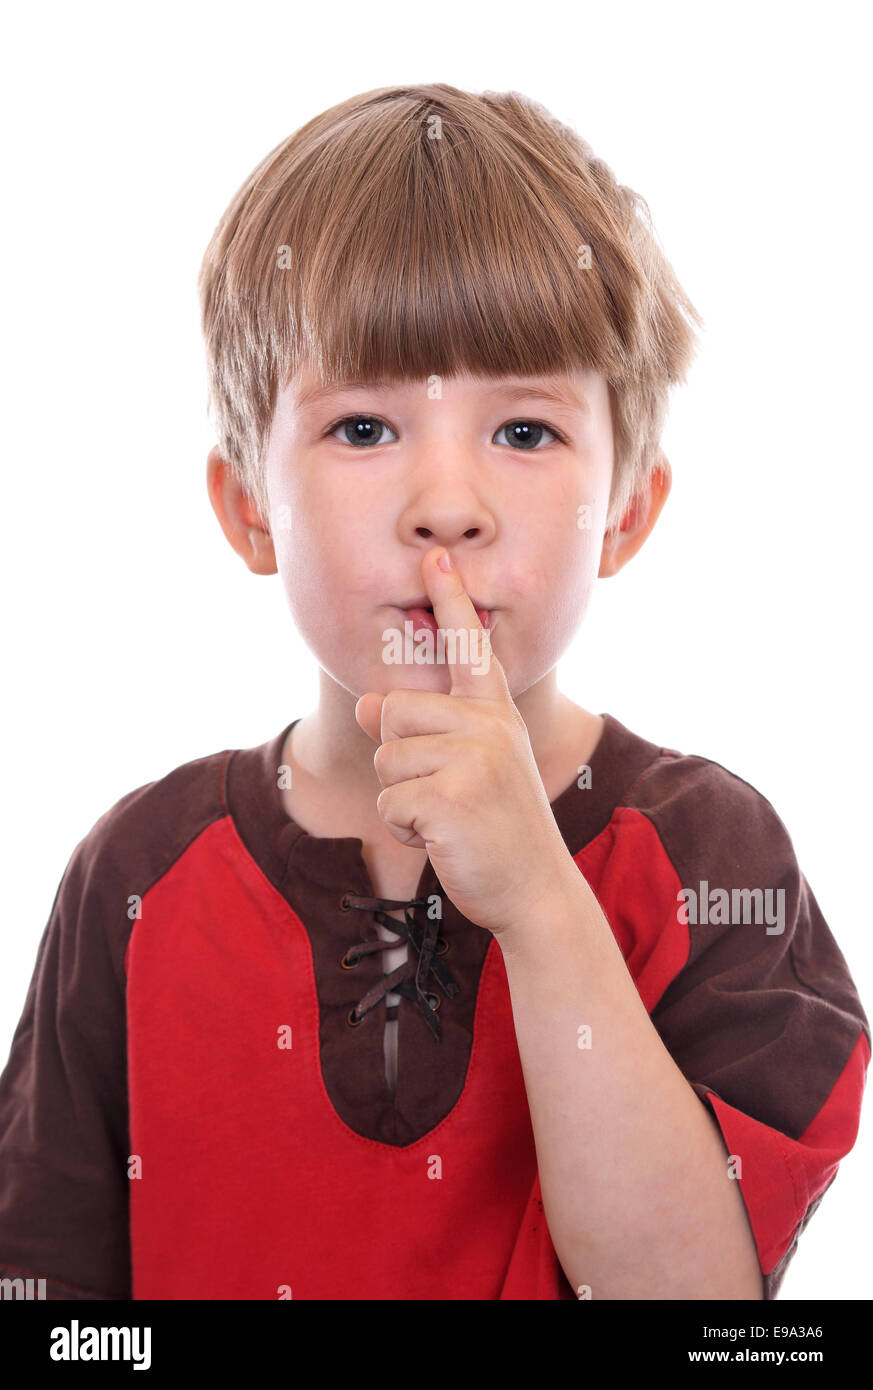 Gesture calling for silence or secrecy - Stock Image